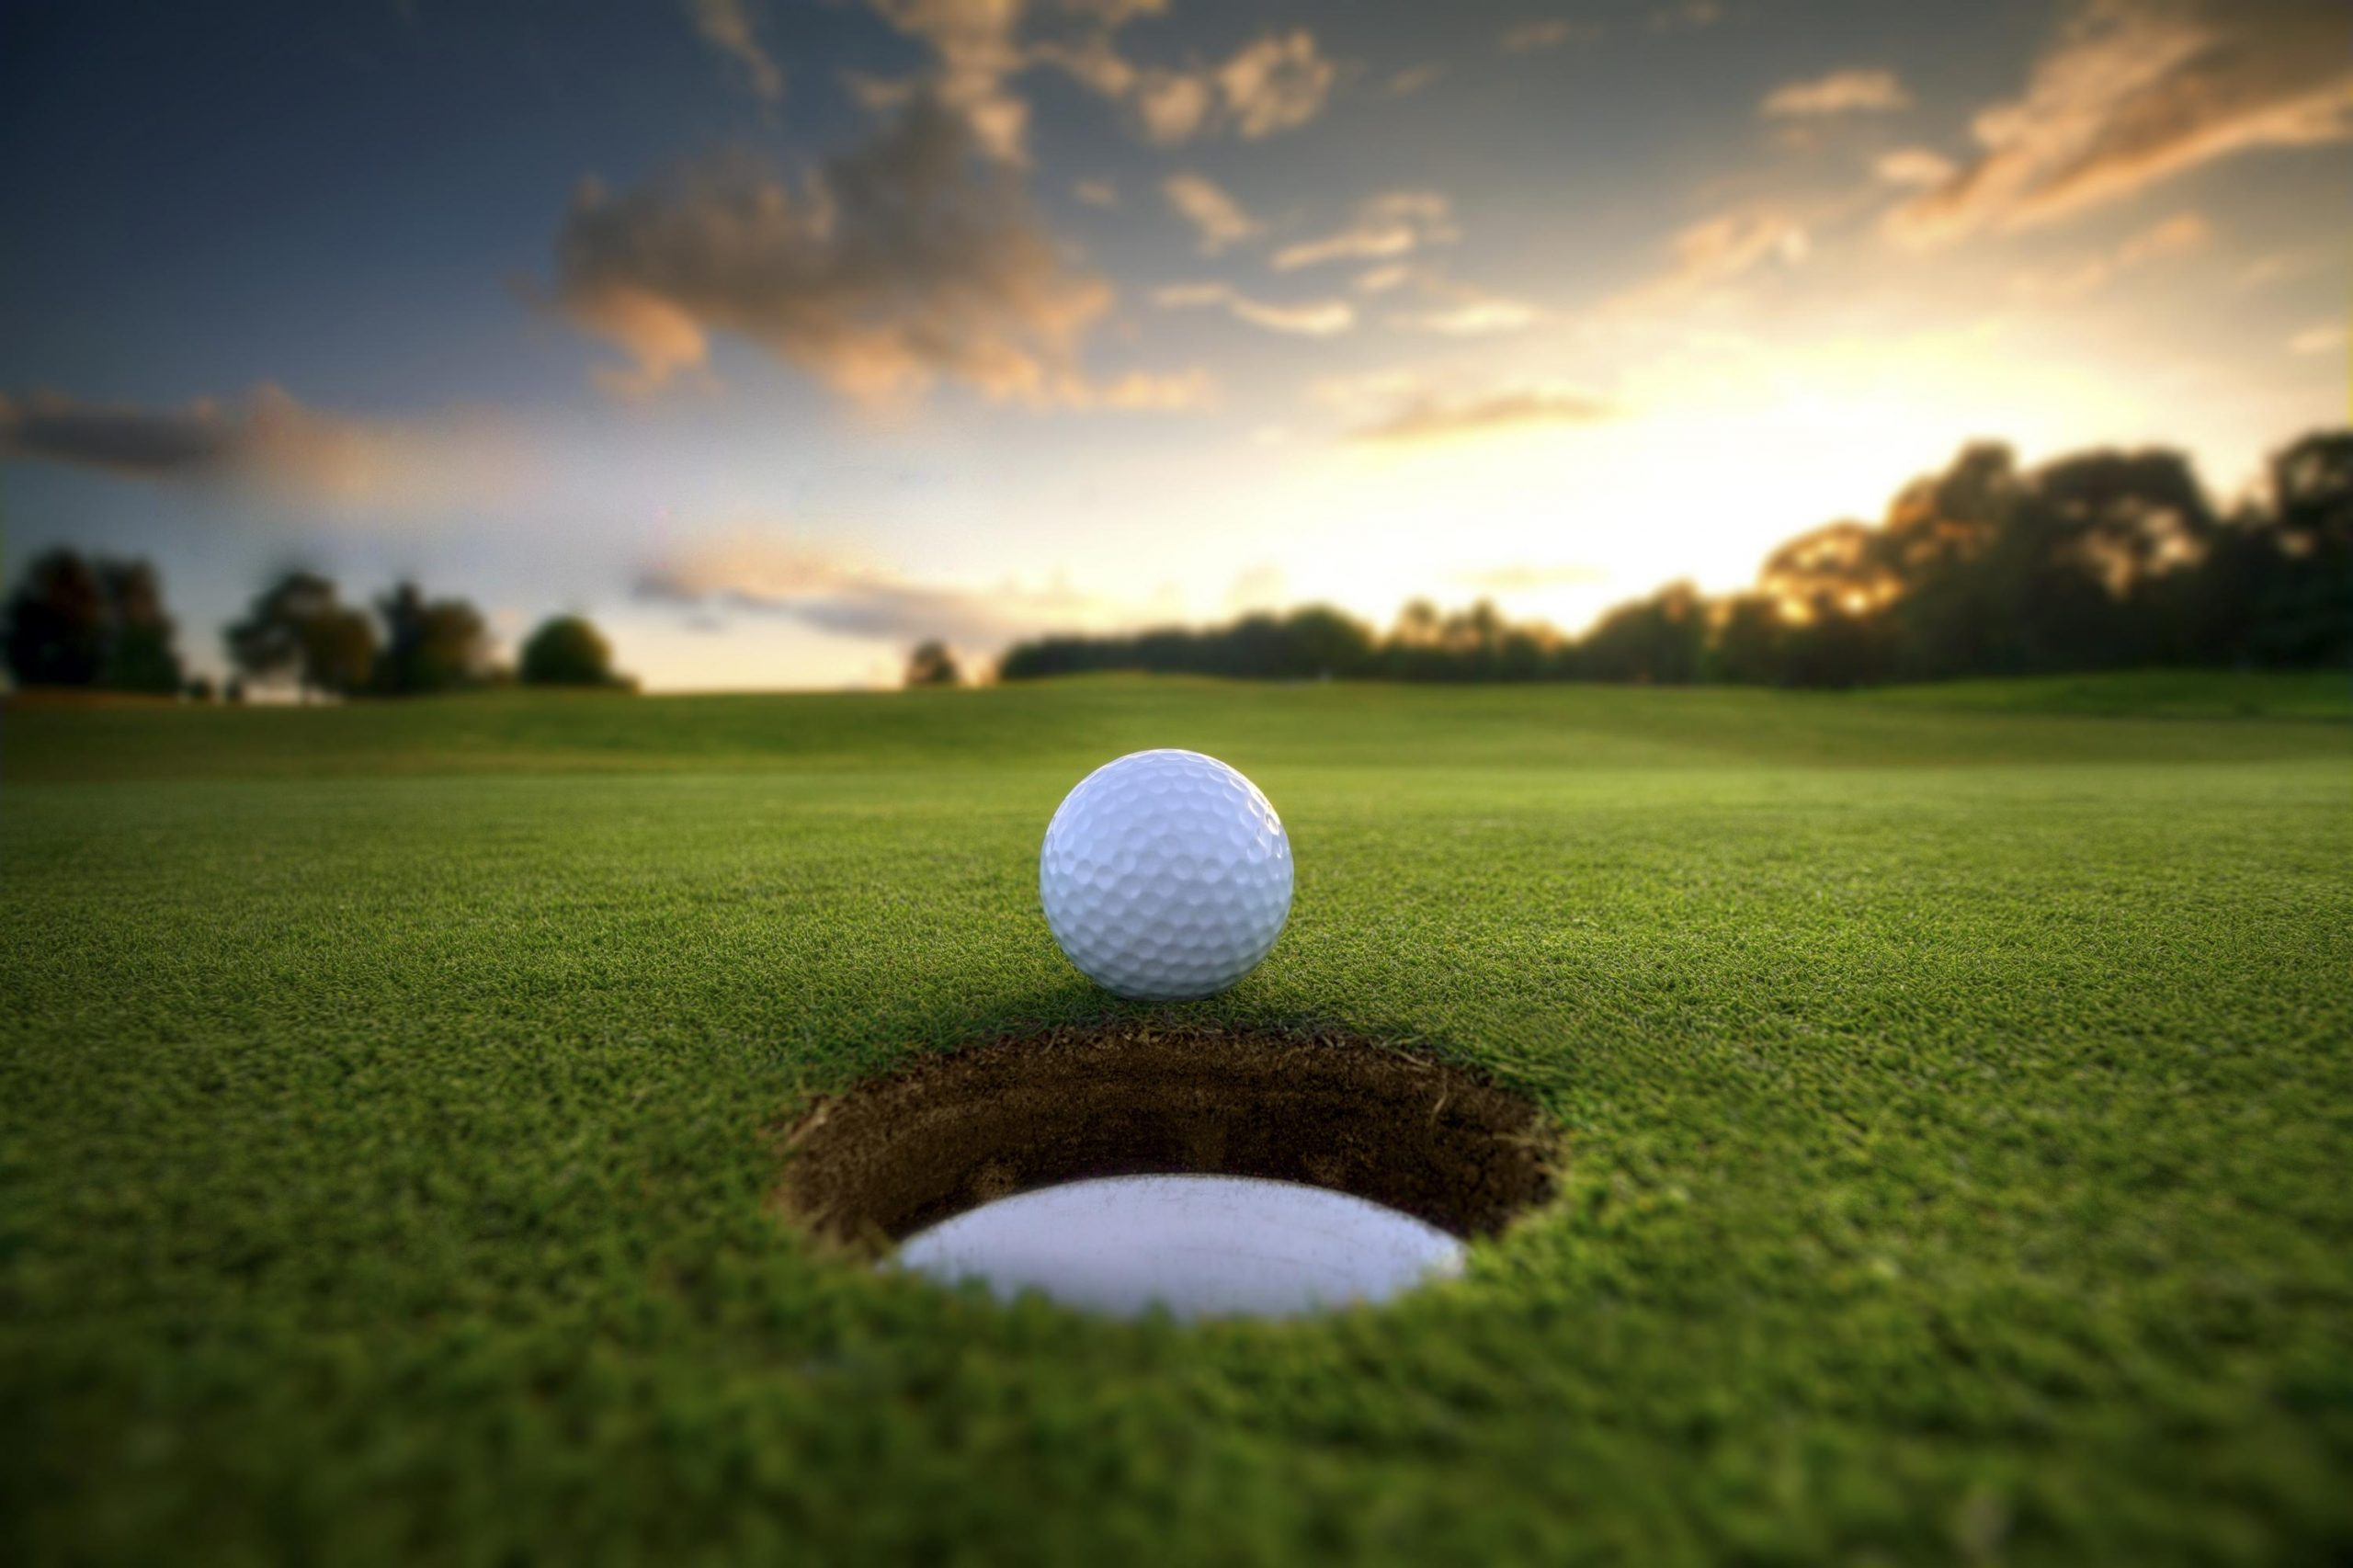 4th Annual Golf Outing to Support Living Organ Donors